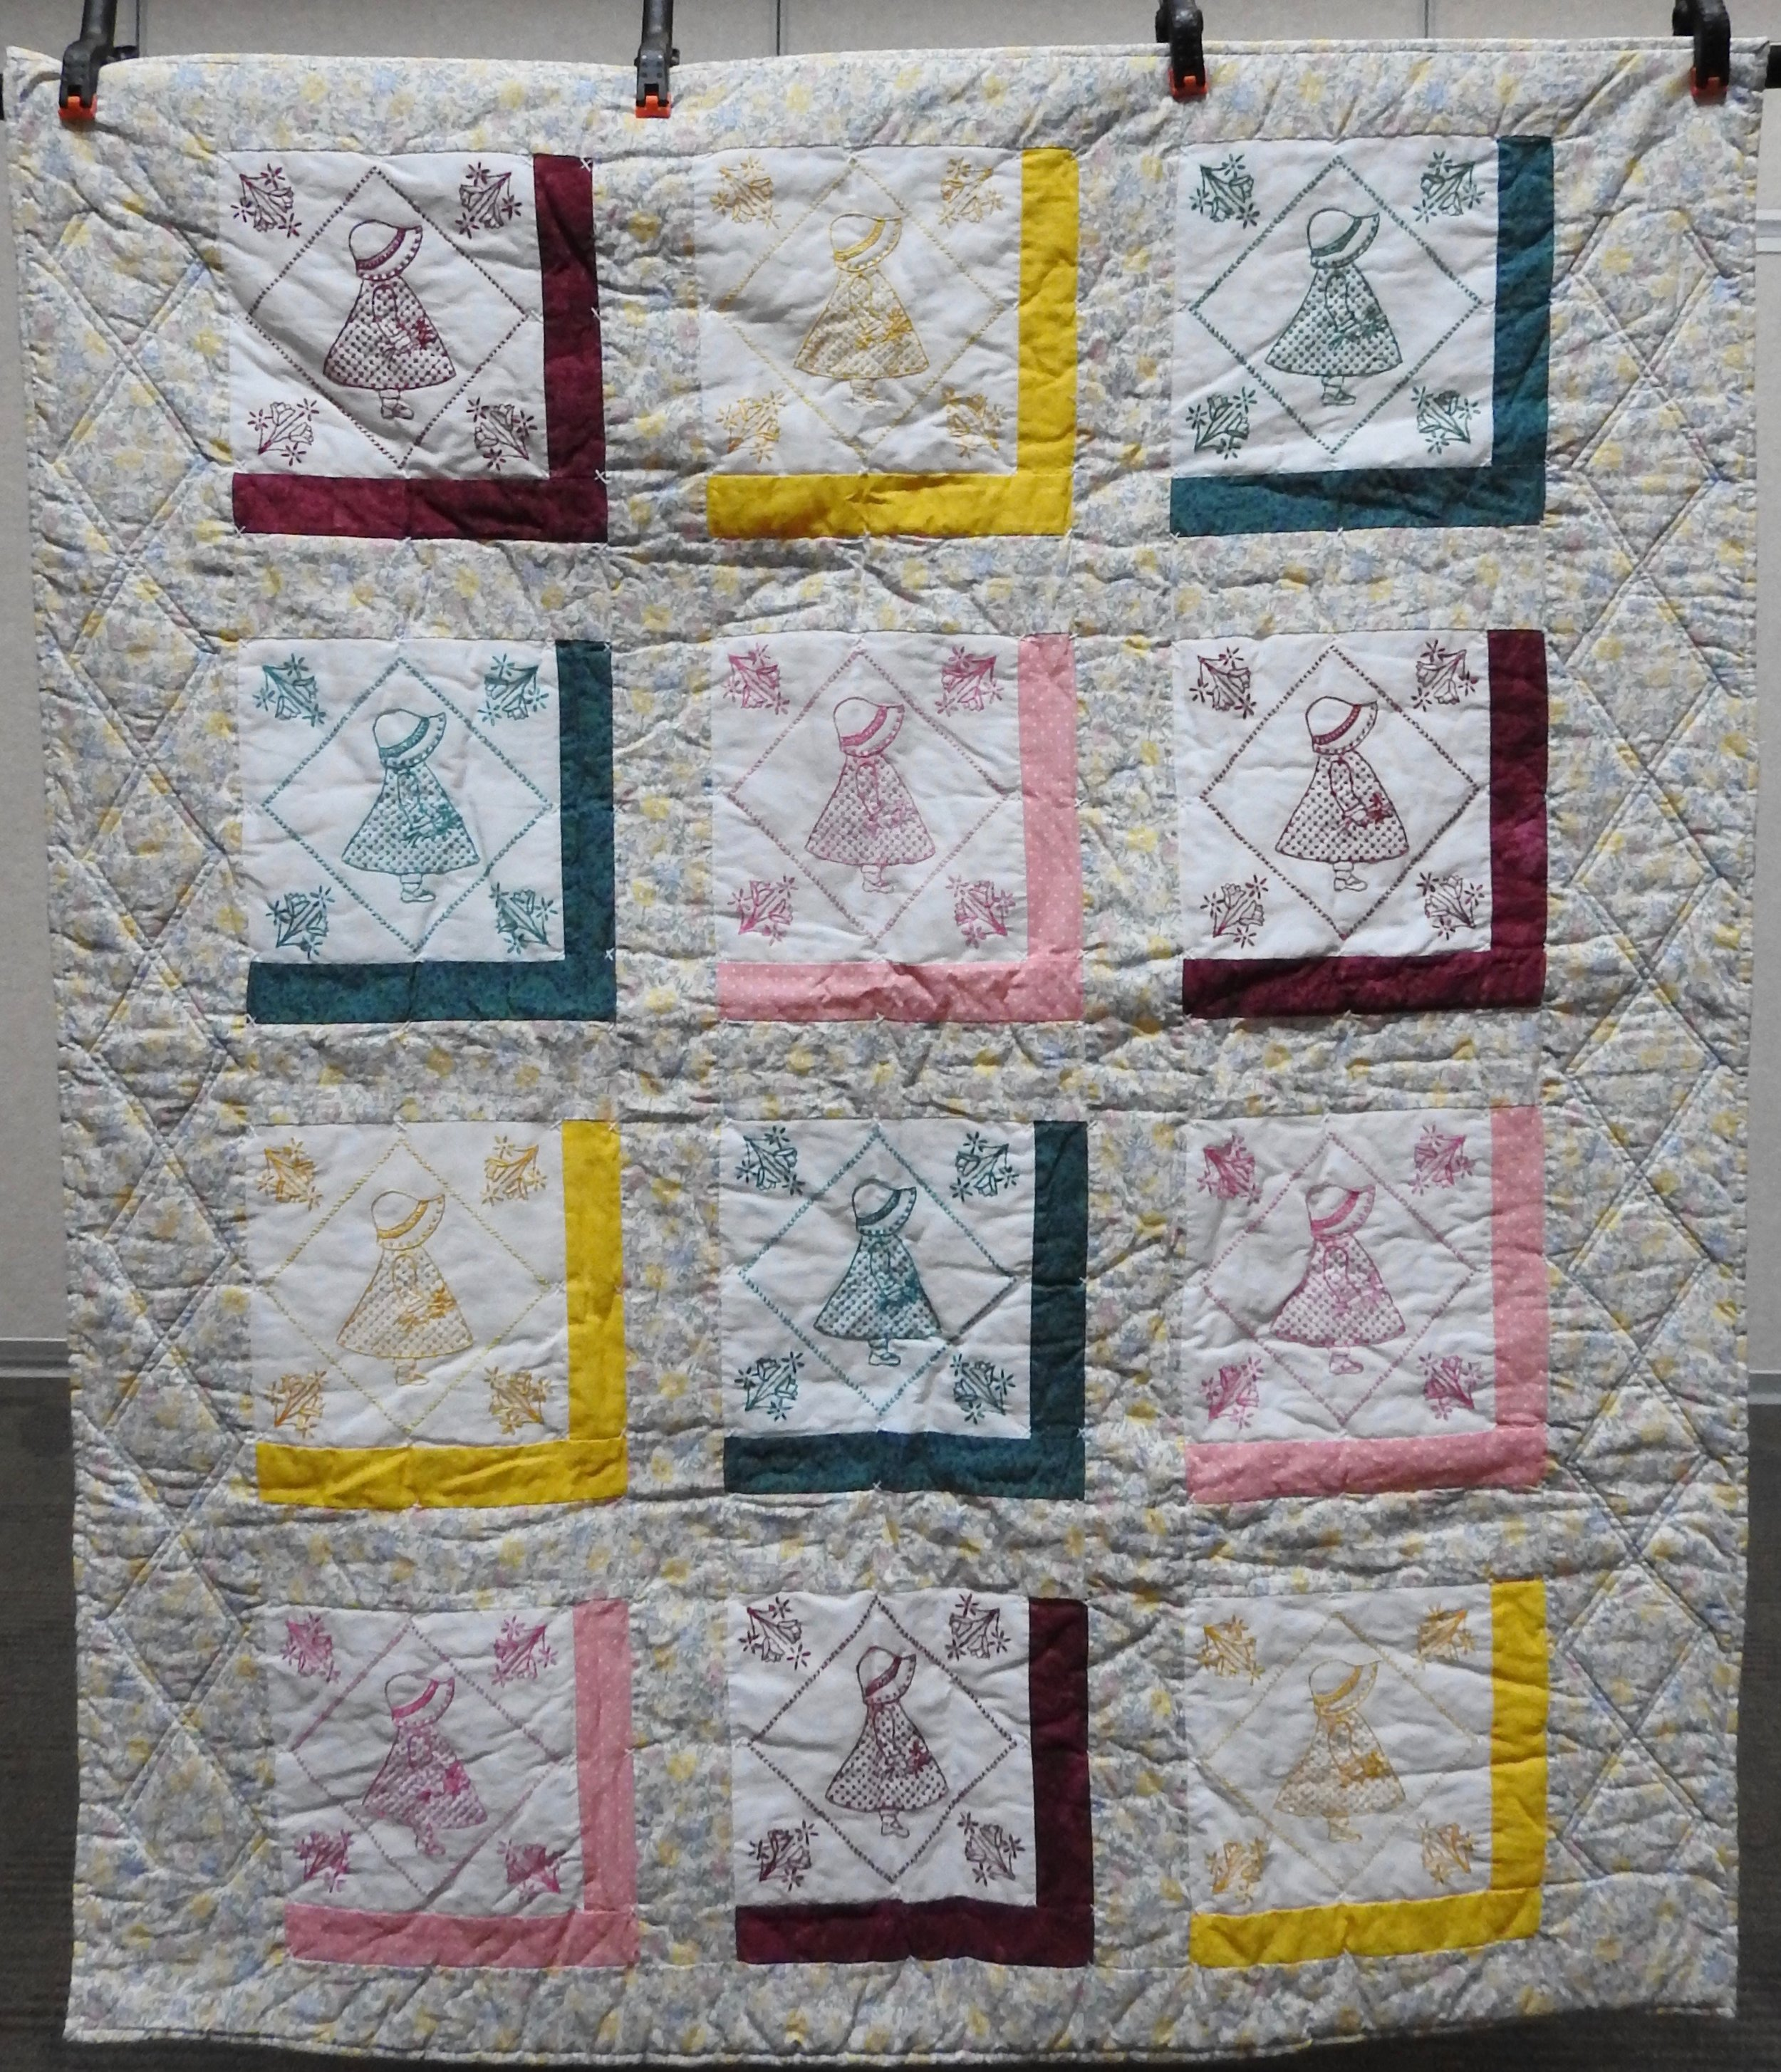 Sunbonnet Sue Crib Size, Pieced, Embroidered, Decatur Knotting & Machine Quilting, Clinton Frame Church, 43 x 50""